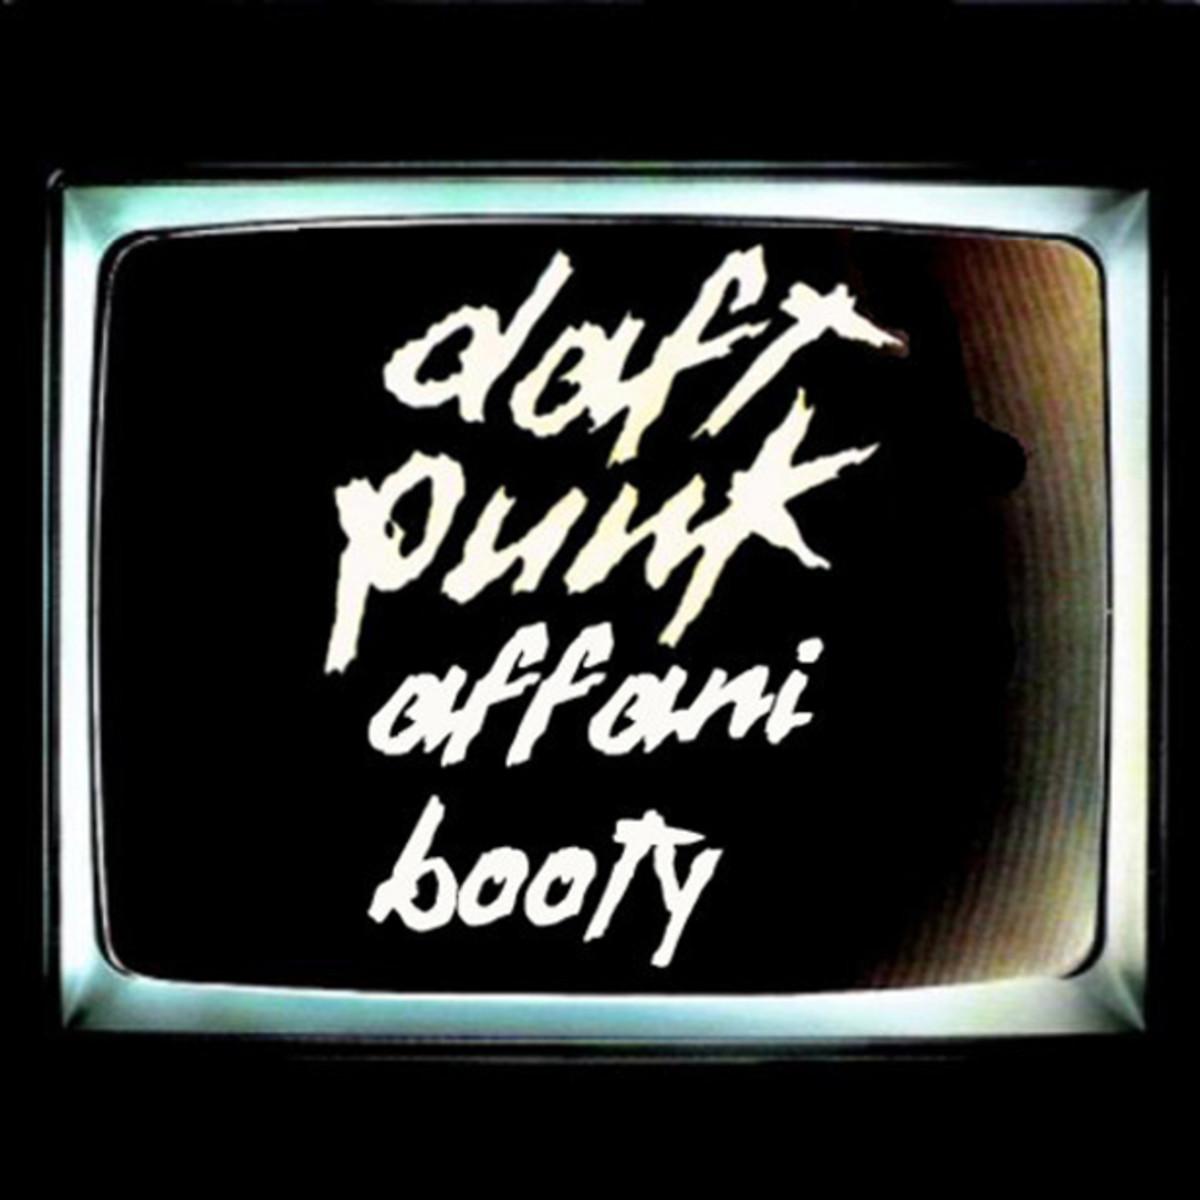 "Free EDM Download: Daft Punk ""Technologic"" (Affani Booty Mix)"